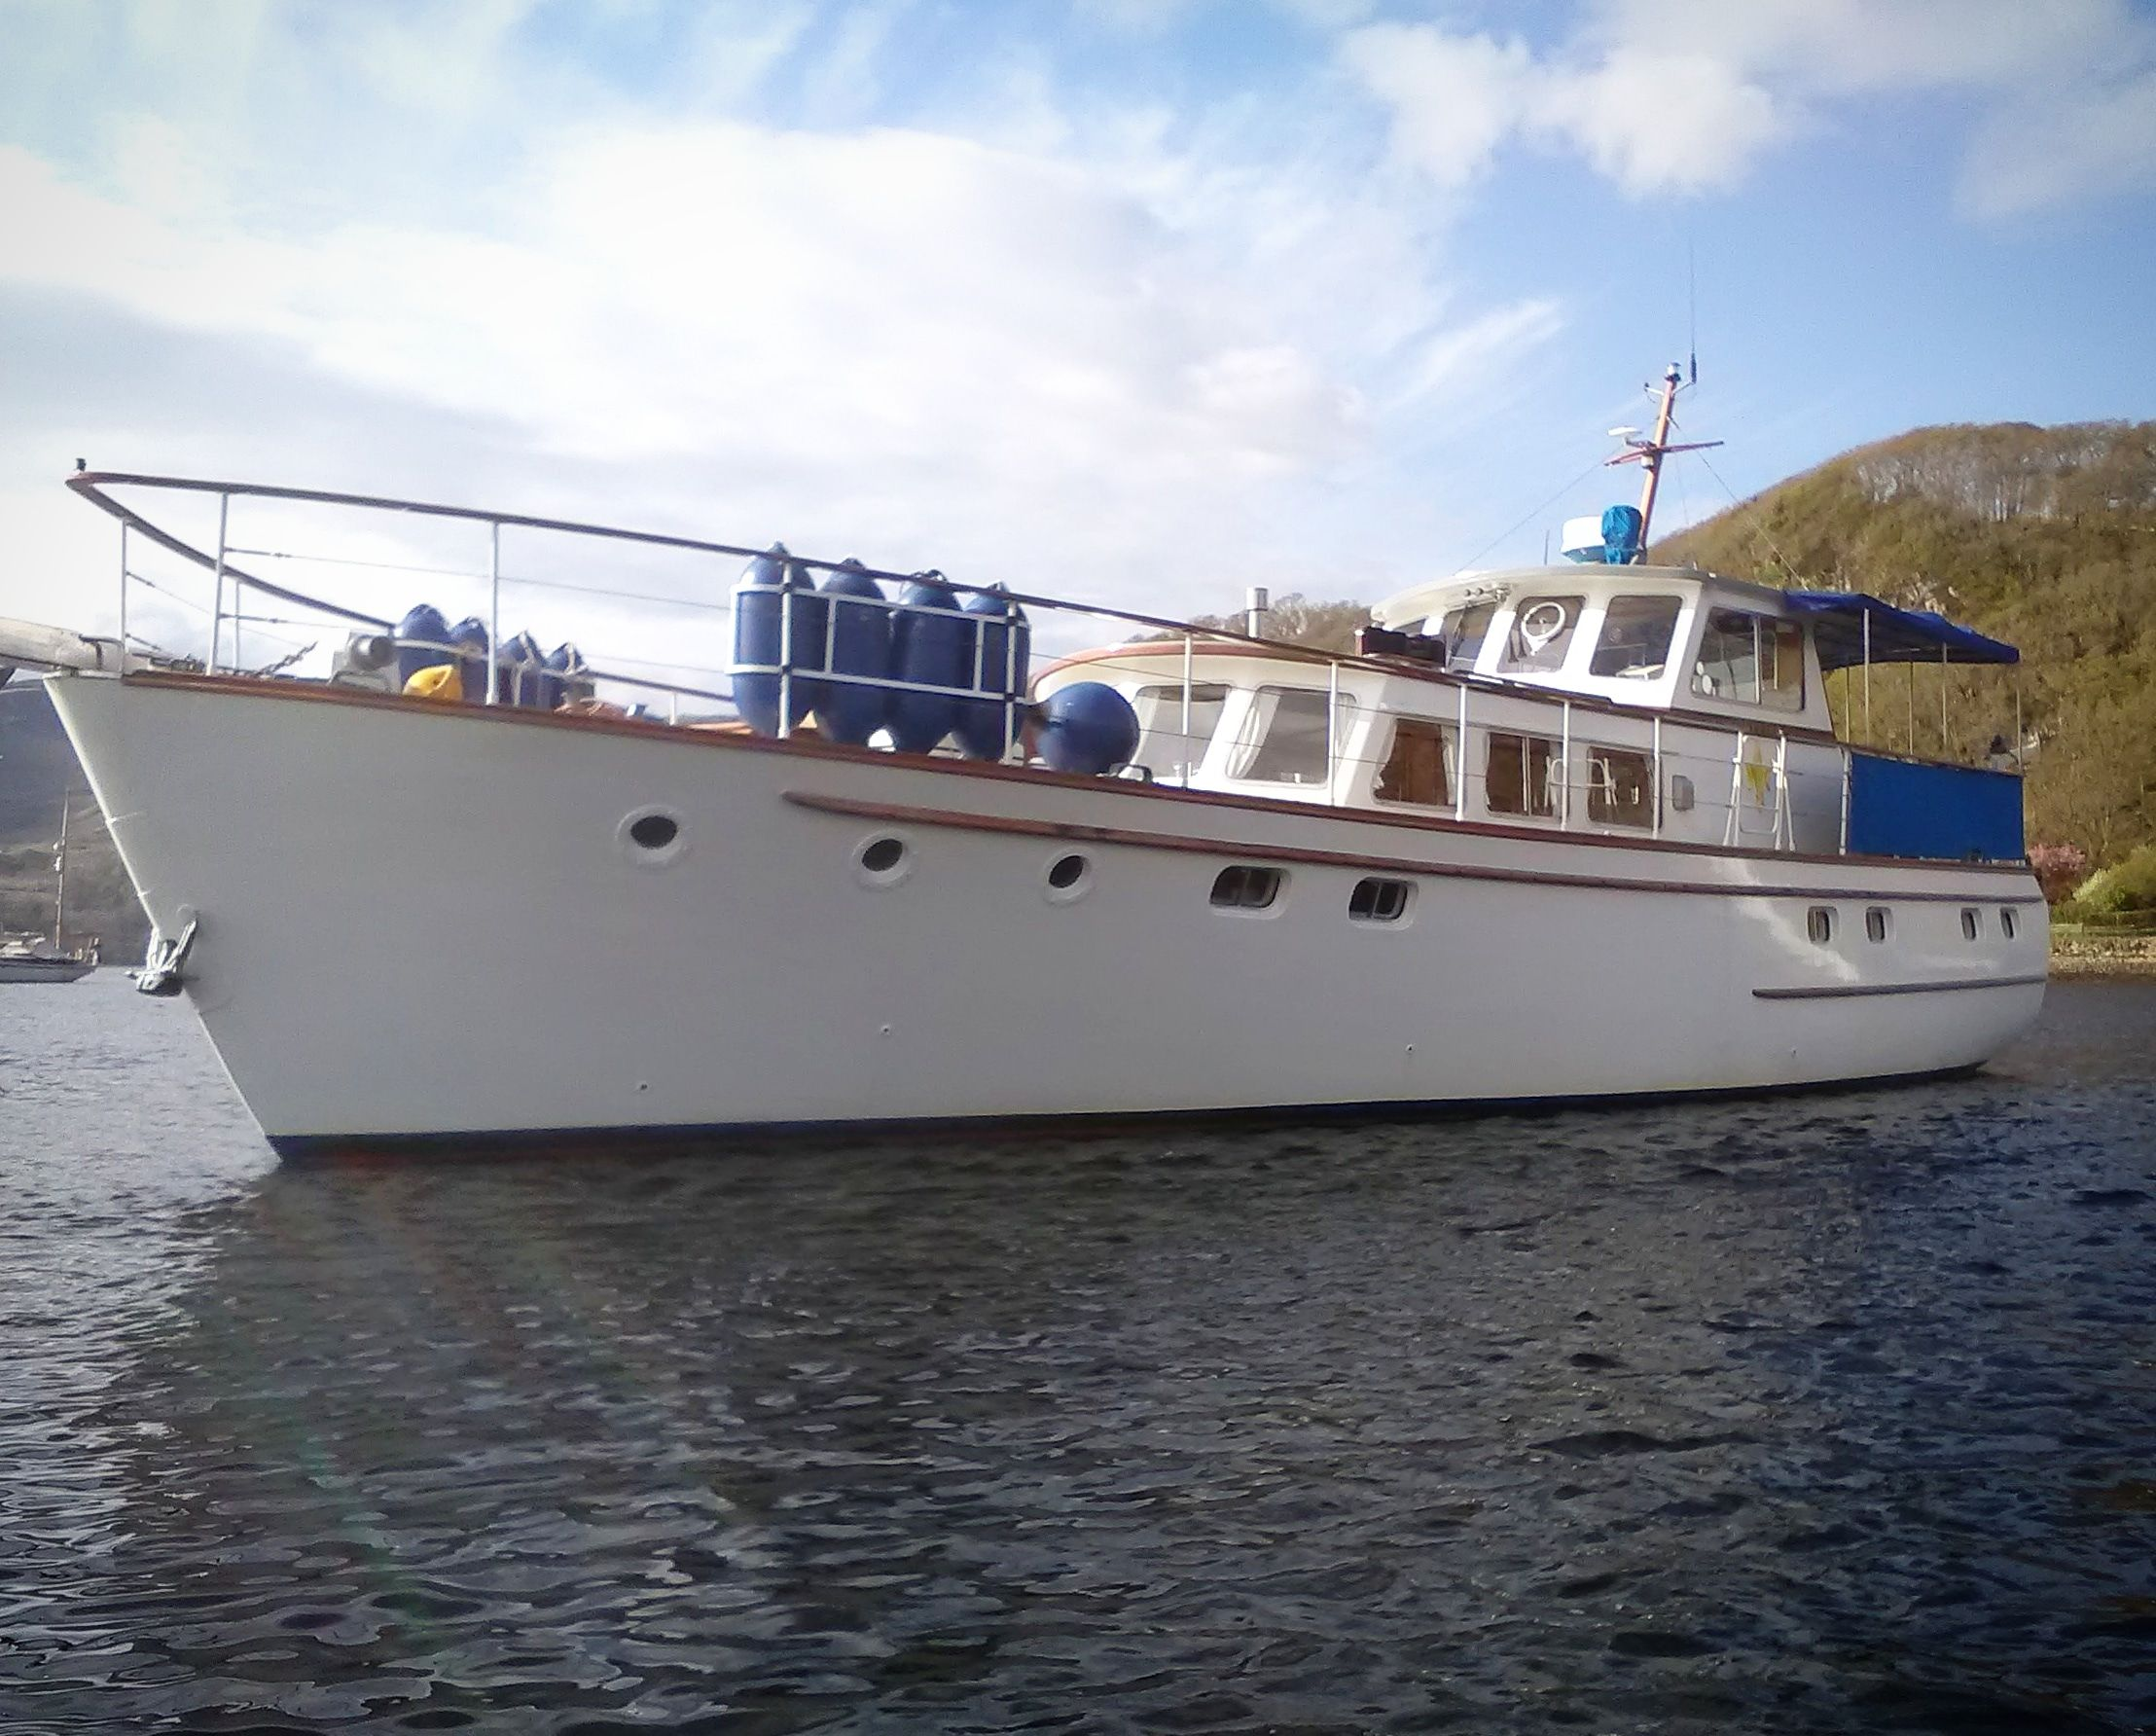 Fleur de Lys 58 motoryacht moored up and ready for delivery to Gibraltar.